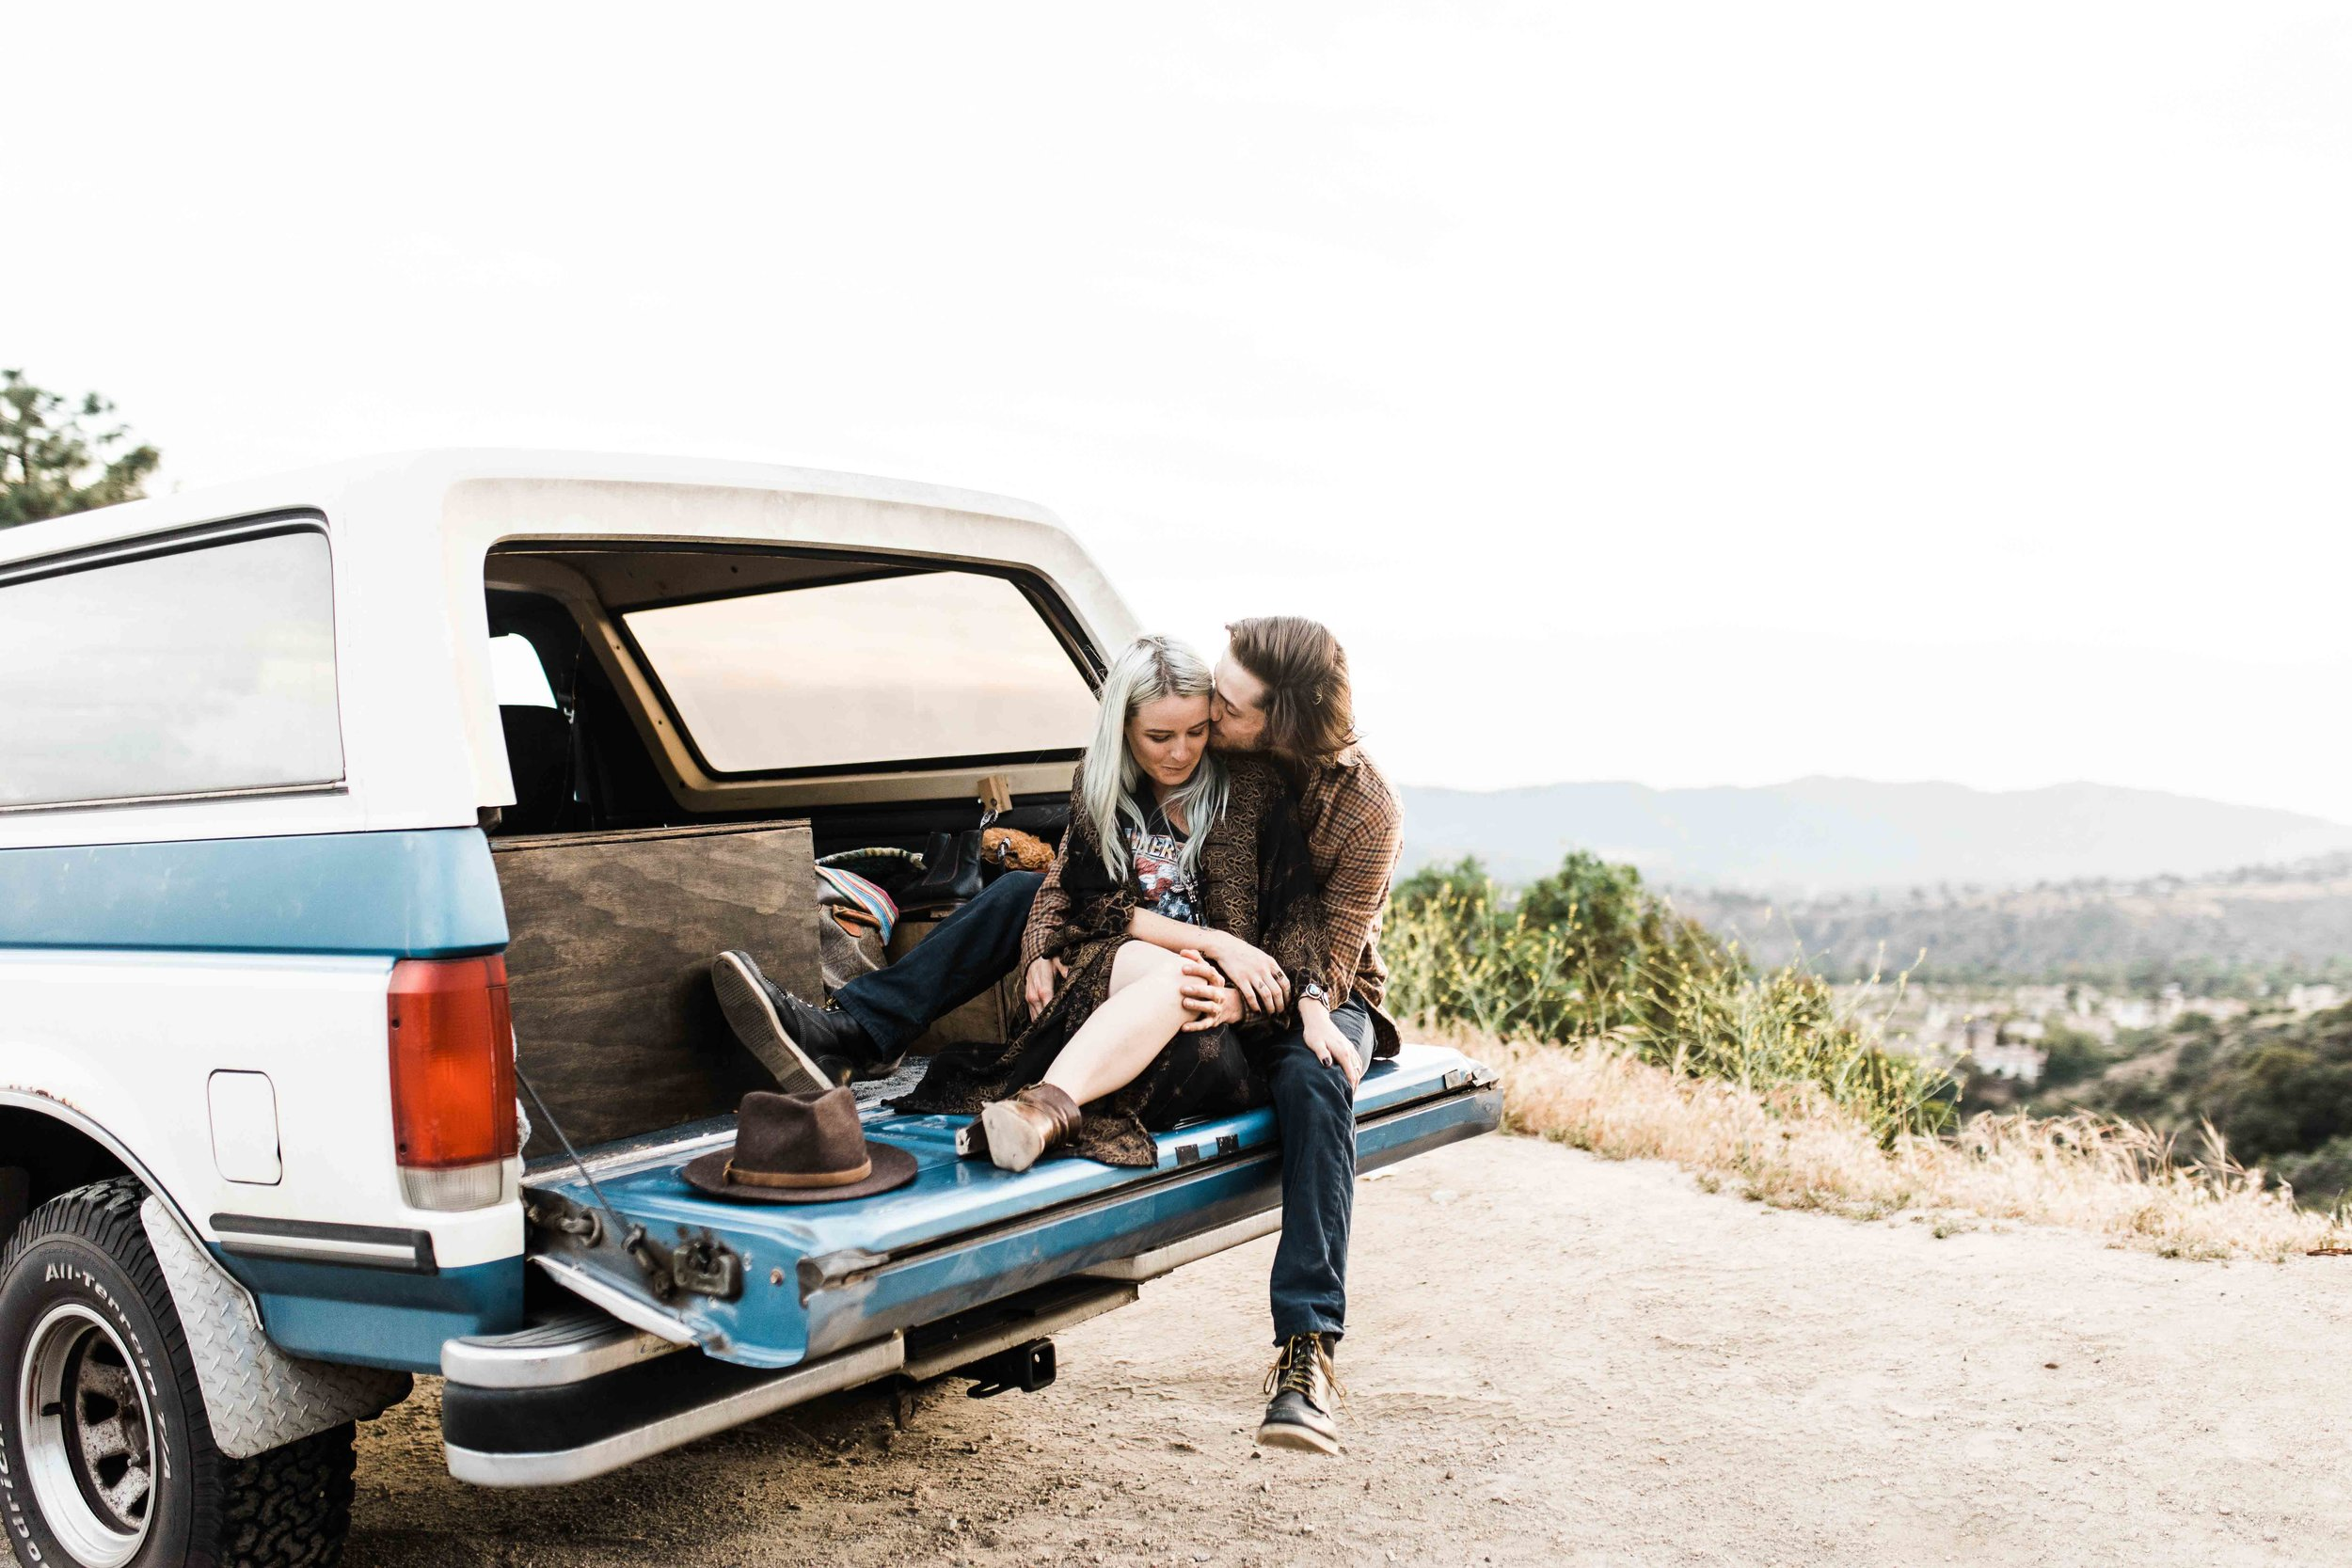 Tara&Will-Clarisse-Rae-Photo-&-Video-Southern-California-Wedding-Photographer-&-Videographer-Los-Angeles-Engagement-Session_26